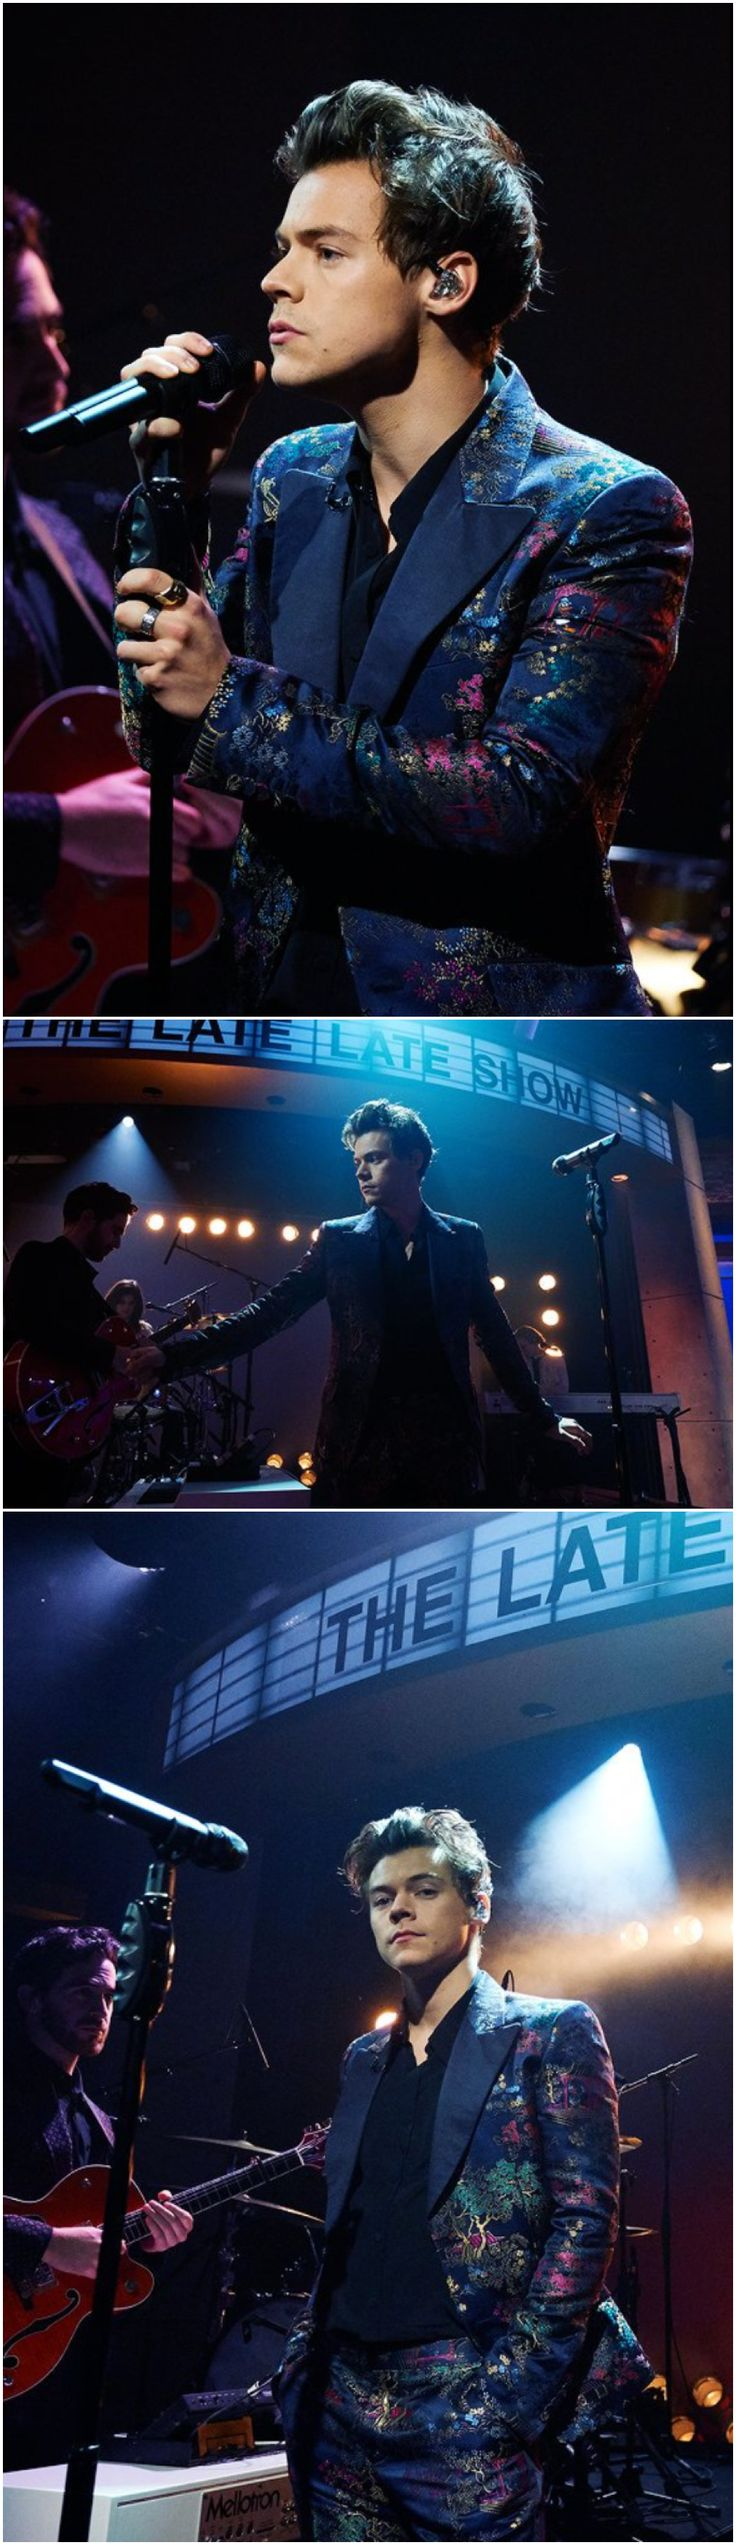 NEW | Harry Performing Sign of the Times on The Late Late Show with James Corden. Follow rickysturn/harry-styles